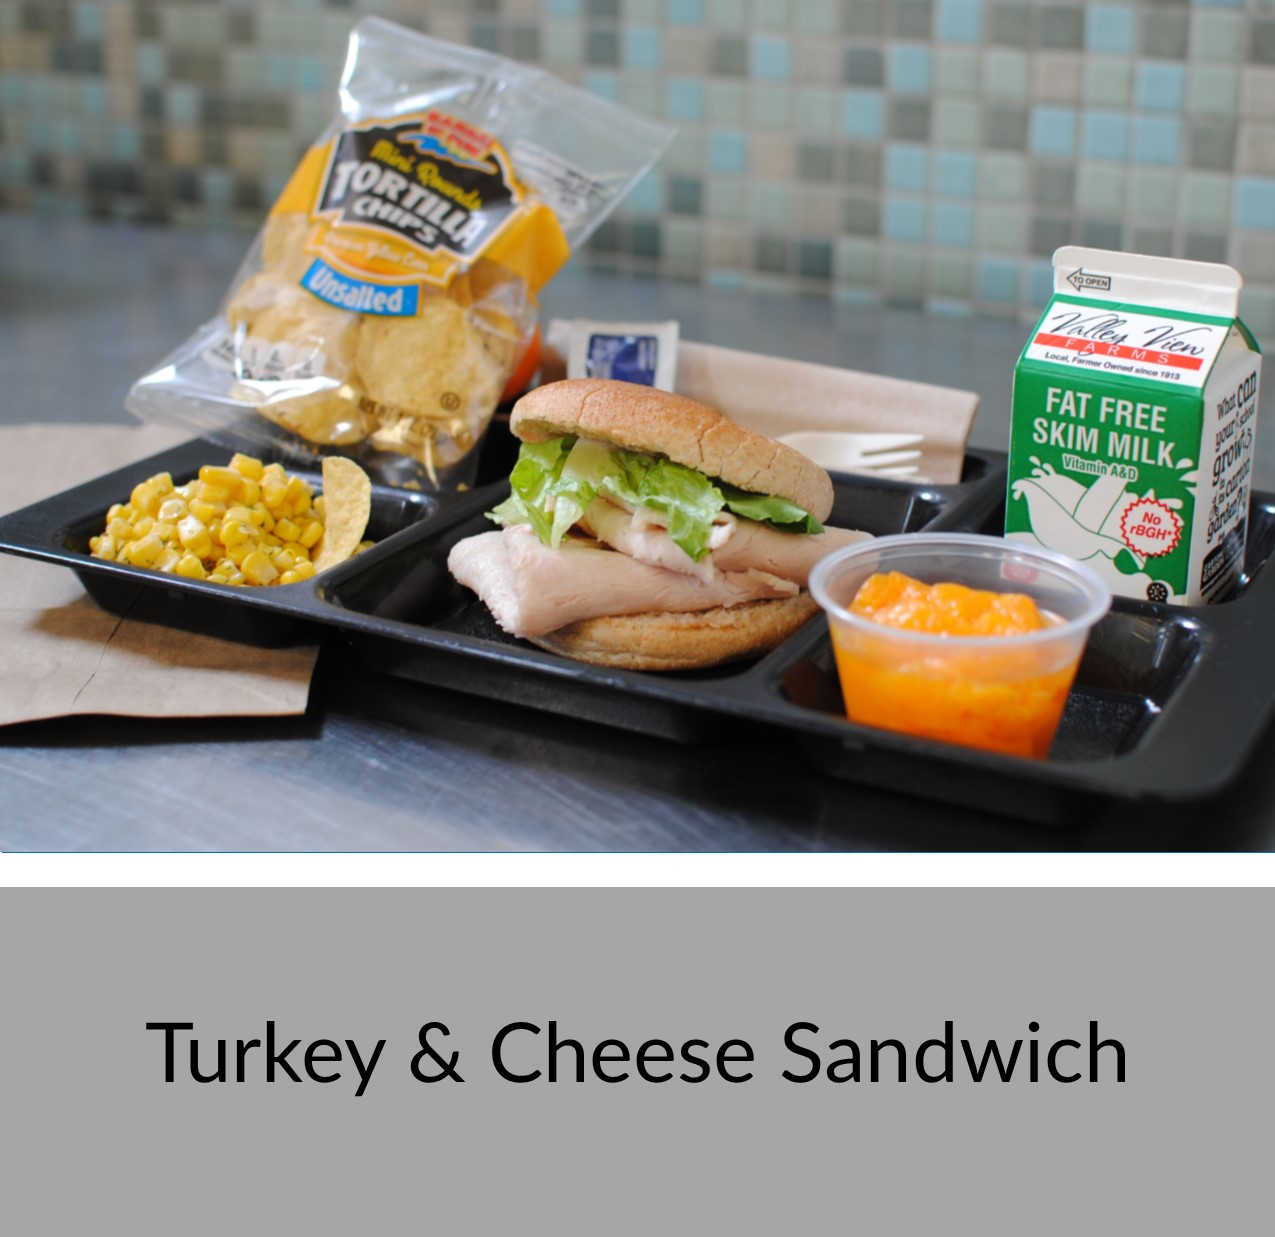 Turkey and Cheese Sandwich